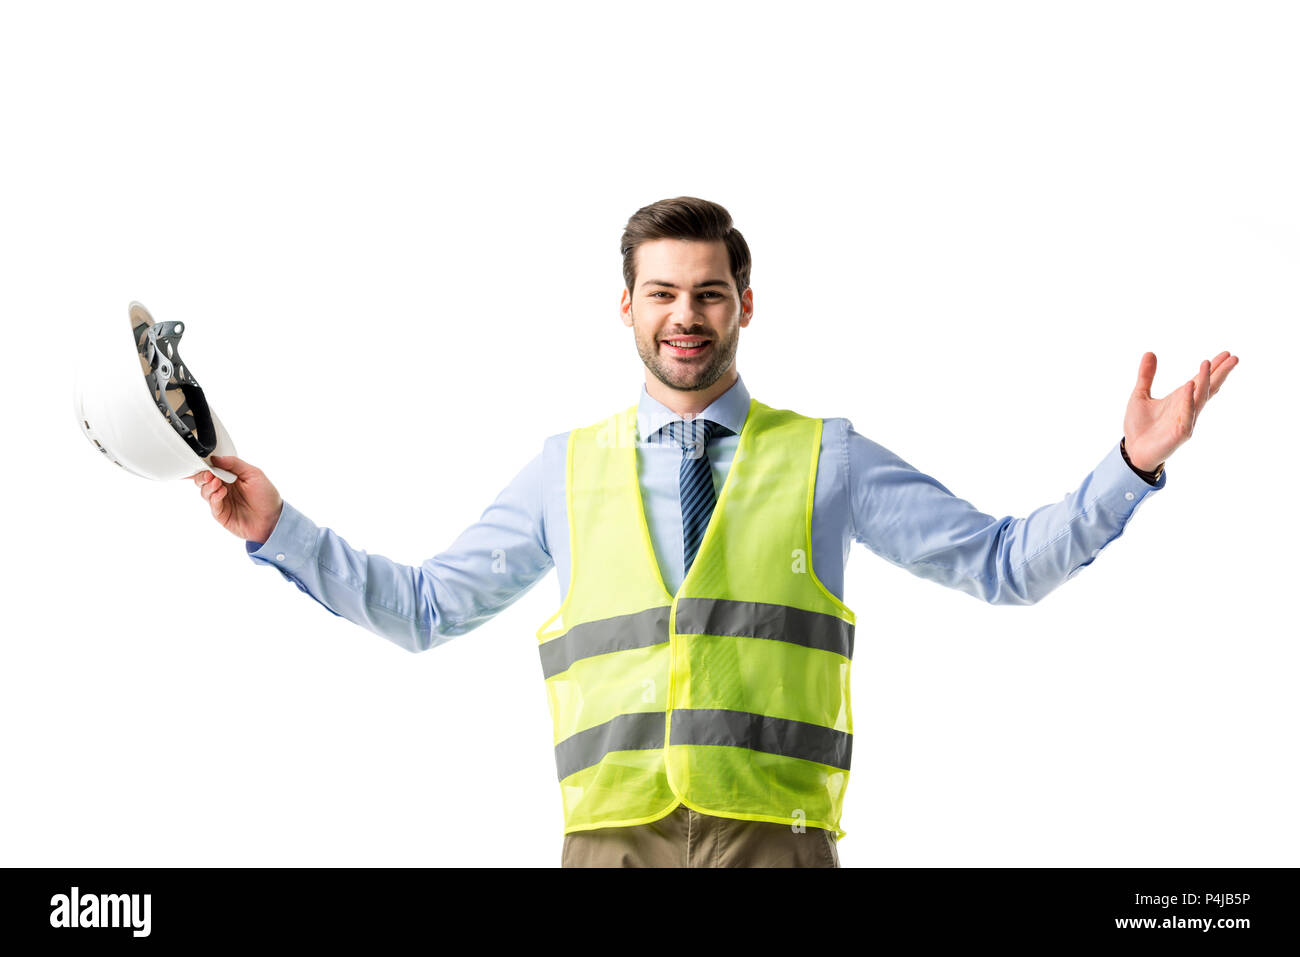 Smiling man in reflective vest holding hardhat isolated on white - Stock Image